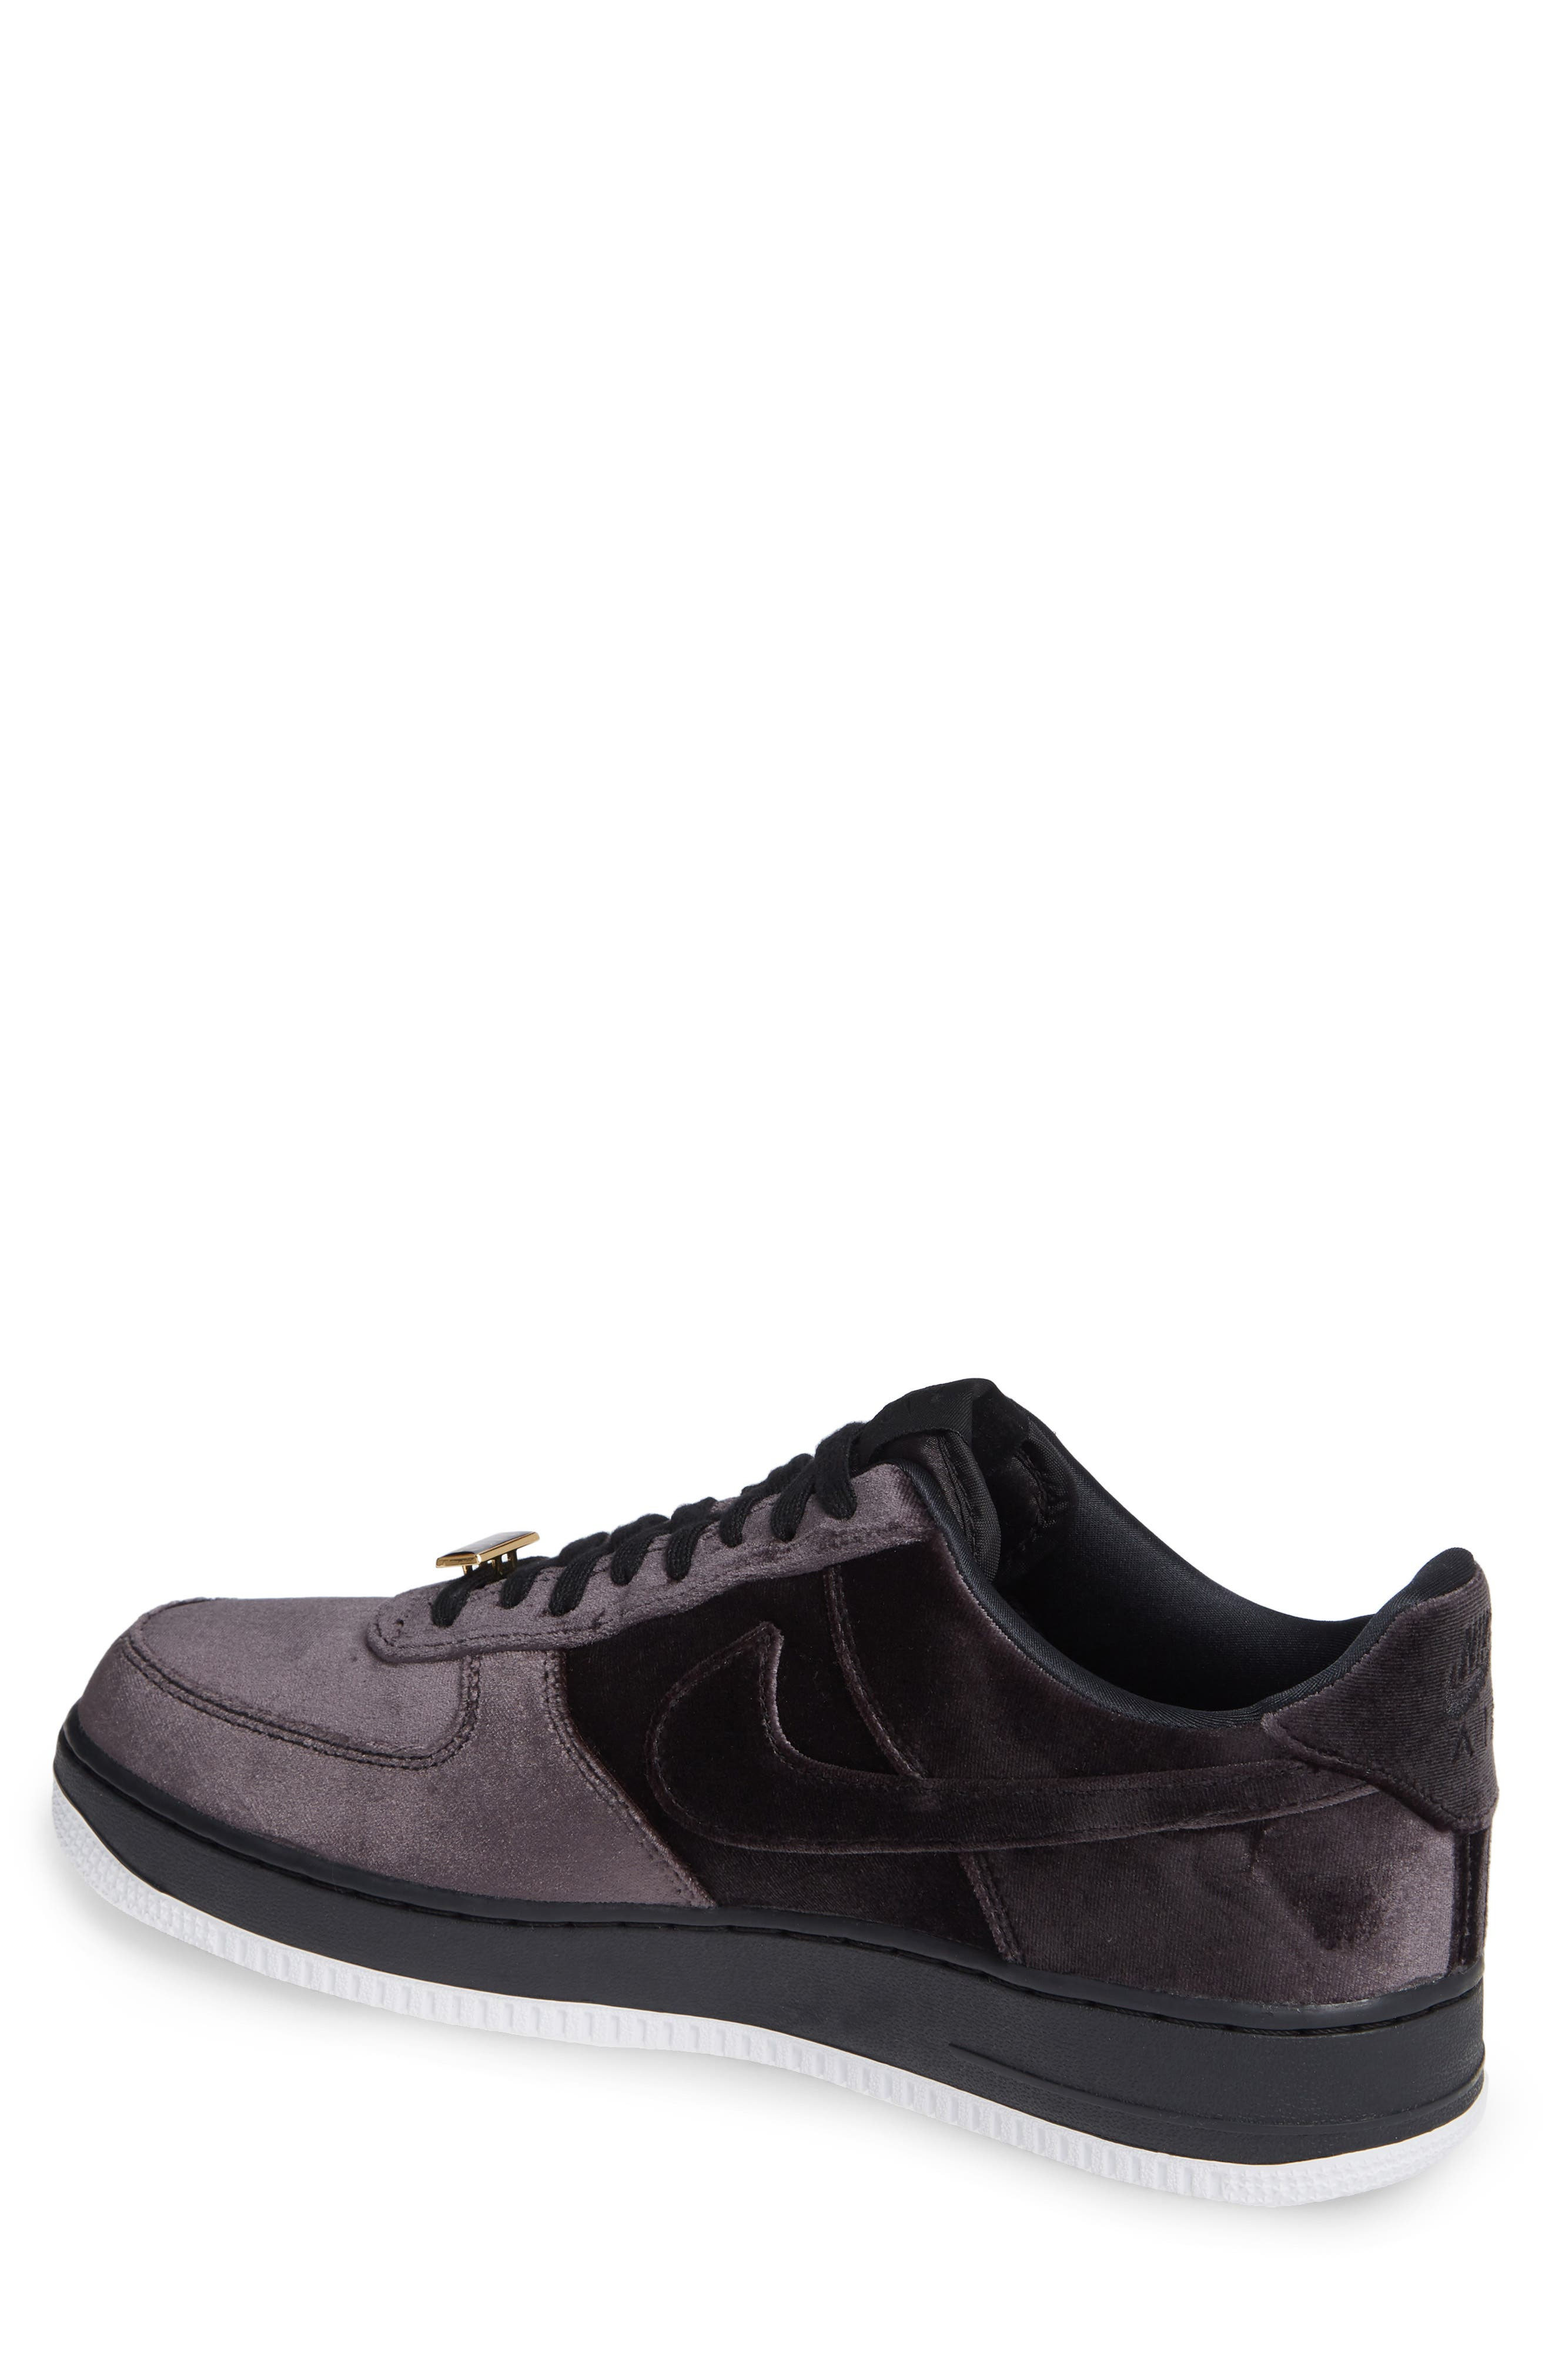 huge discount 5020b ac778 Style on a Shoestring Shoe Steals  Nordstrom